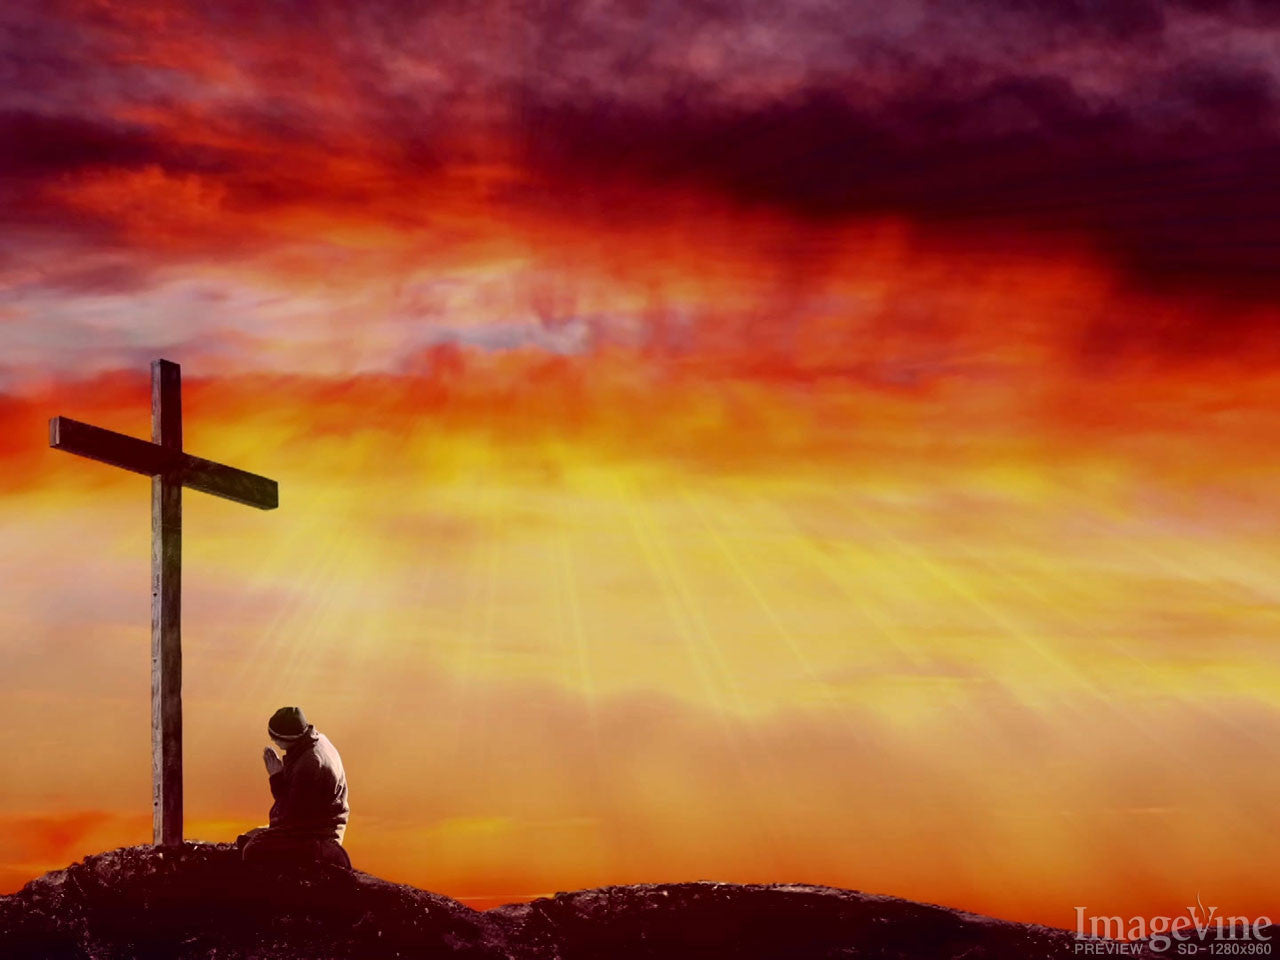 Shadow Of The Cross Backgrounds Imagevine